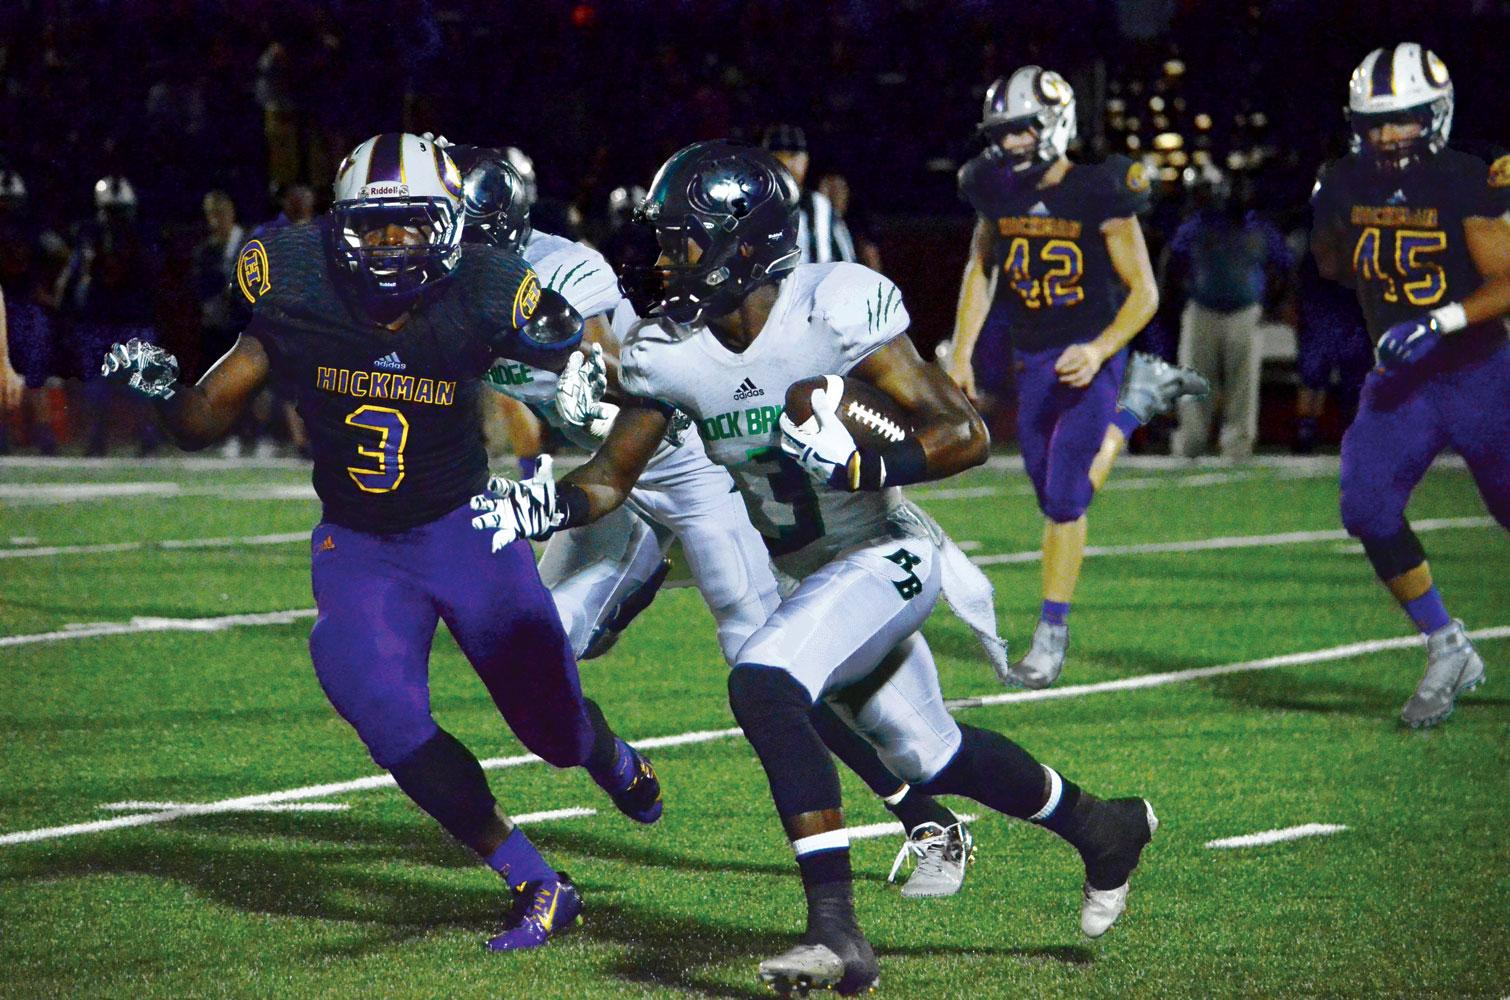 Bruins hope to cage Jays in homecoming game